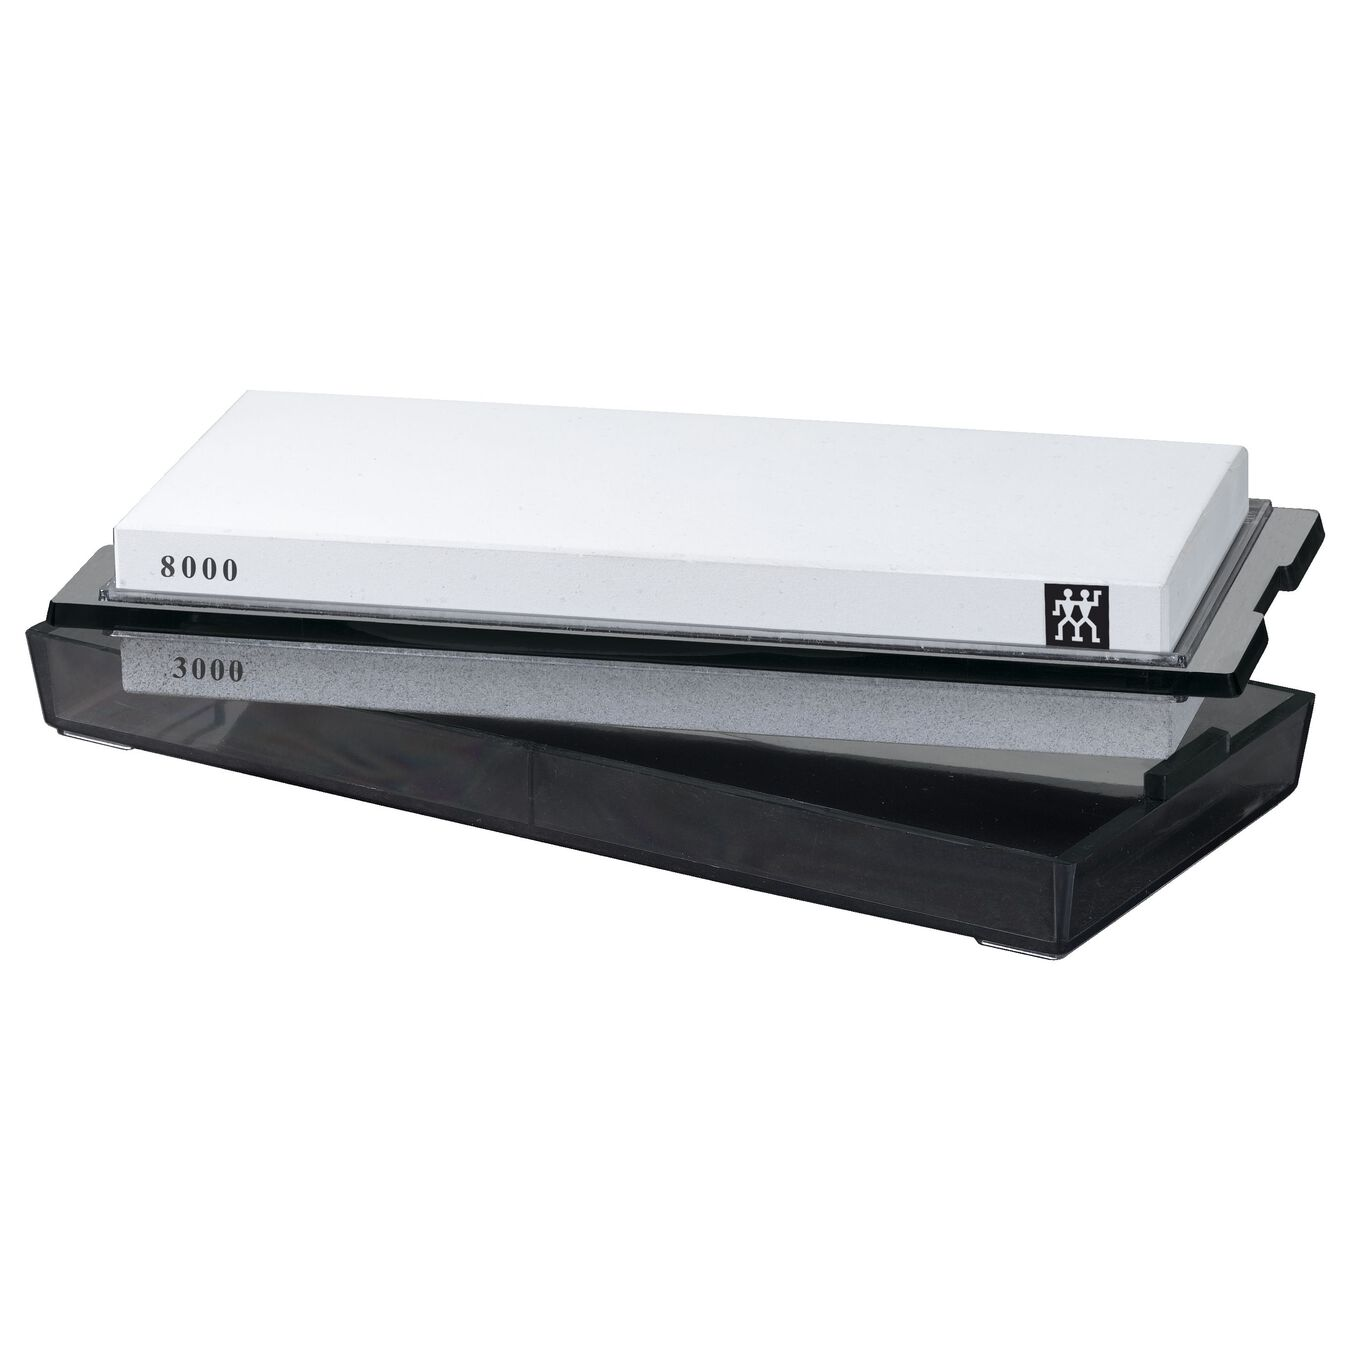 Sharpening stone,,large 3